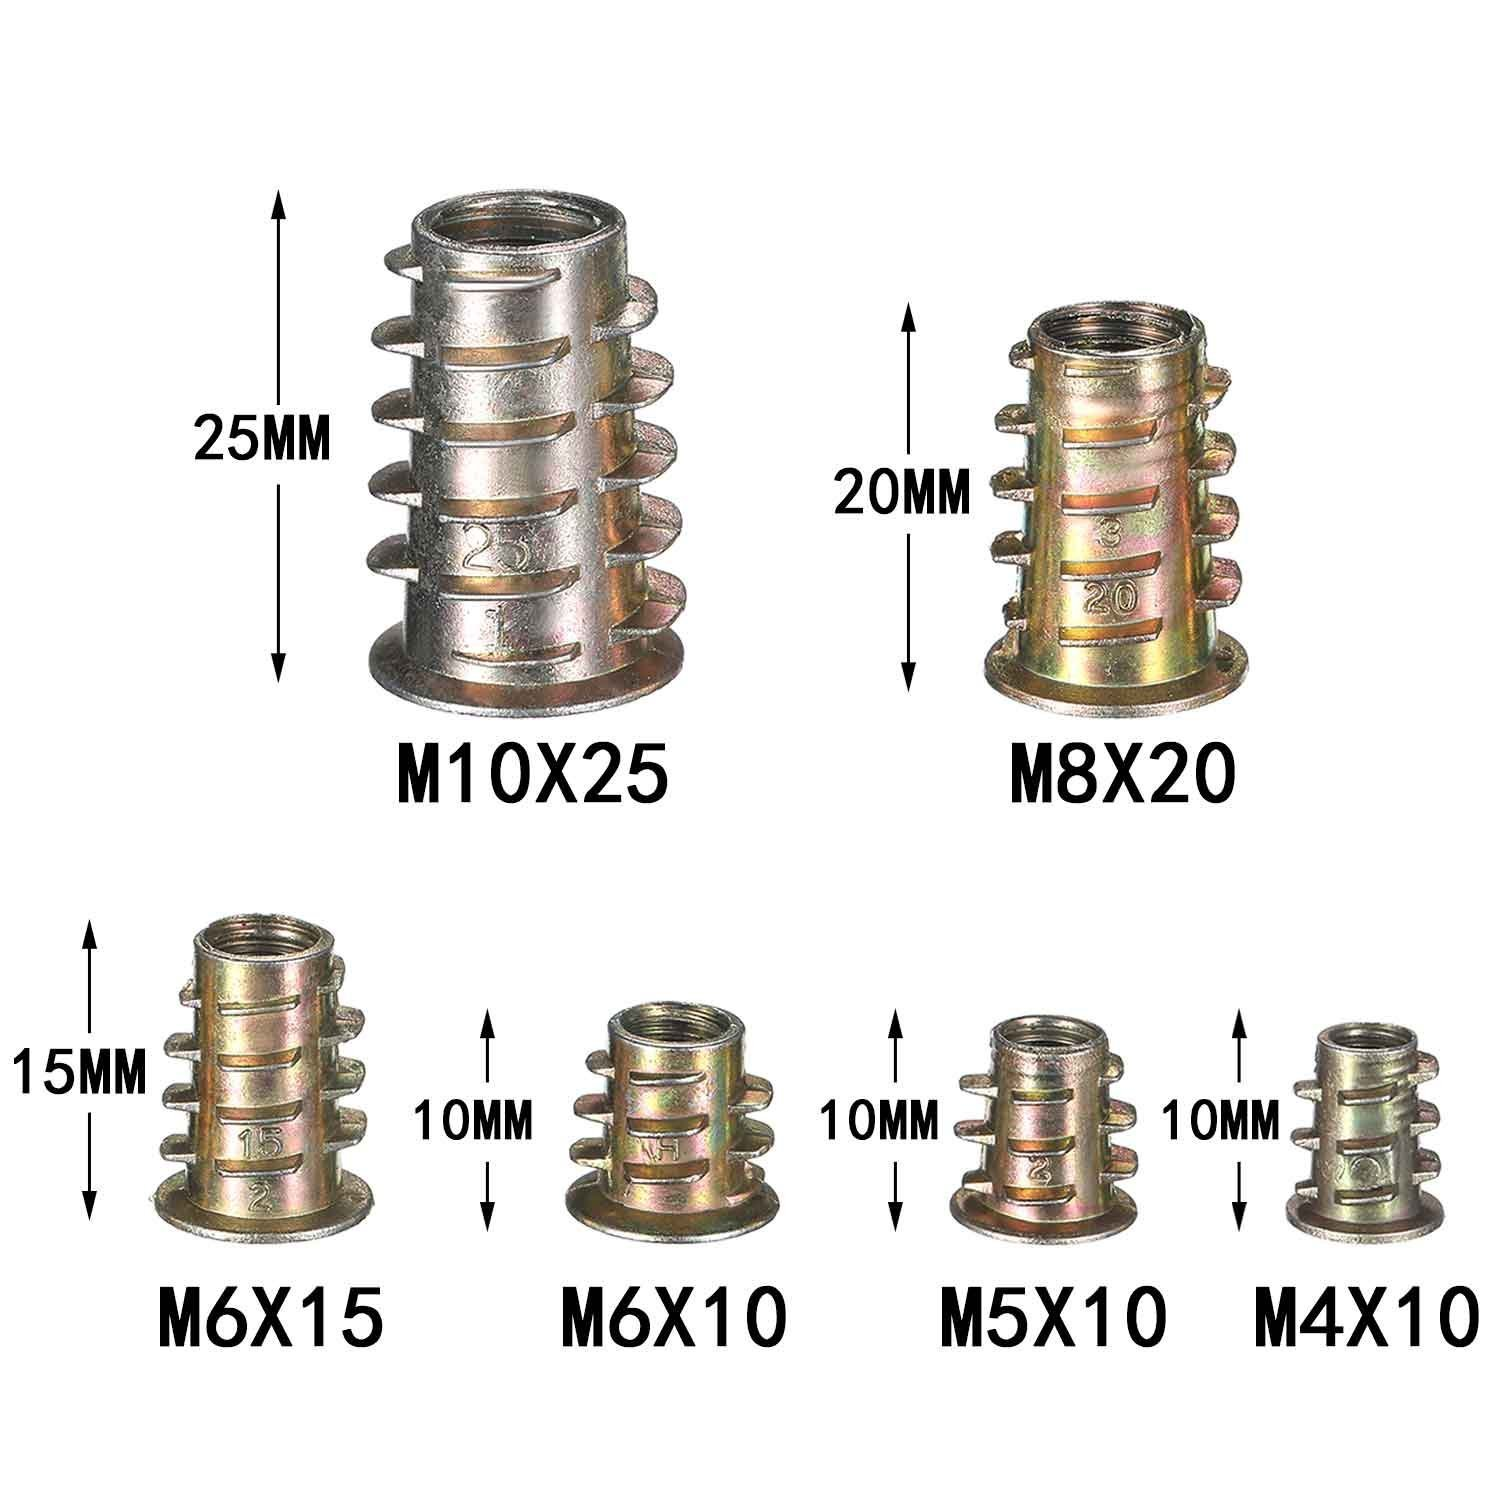 ESDInCtl 100 Pieces M4/M5/M6/M8/M10 Zinc Alloy Furniture Hex Socket Screw Inserts Threaded Insert Nuts Assortment Tool Kit for Wood Furniture